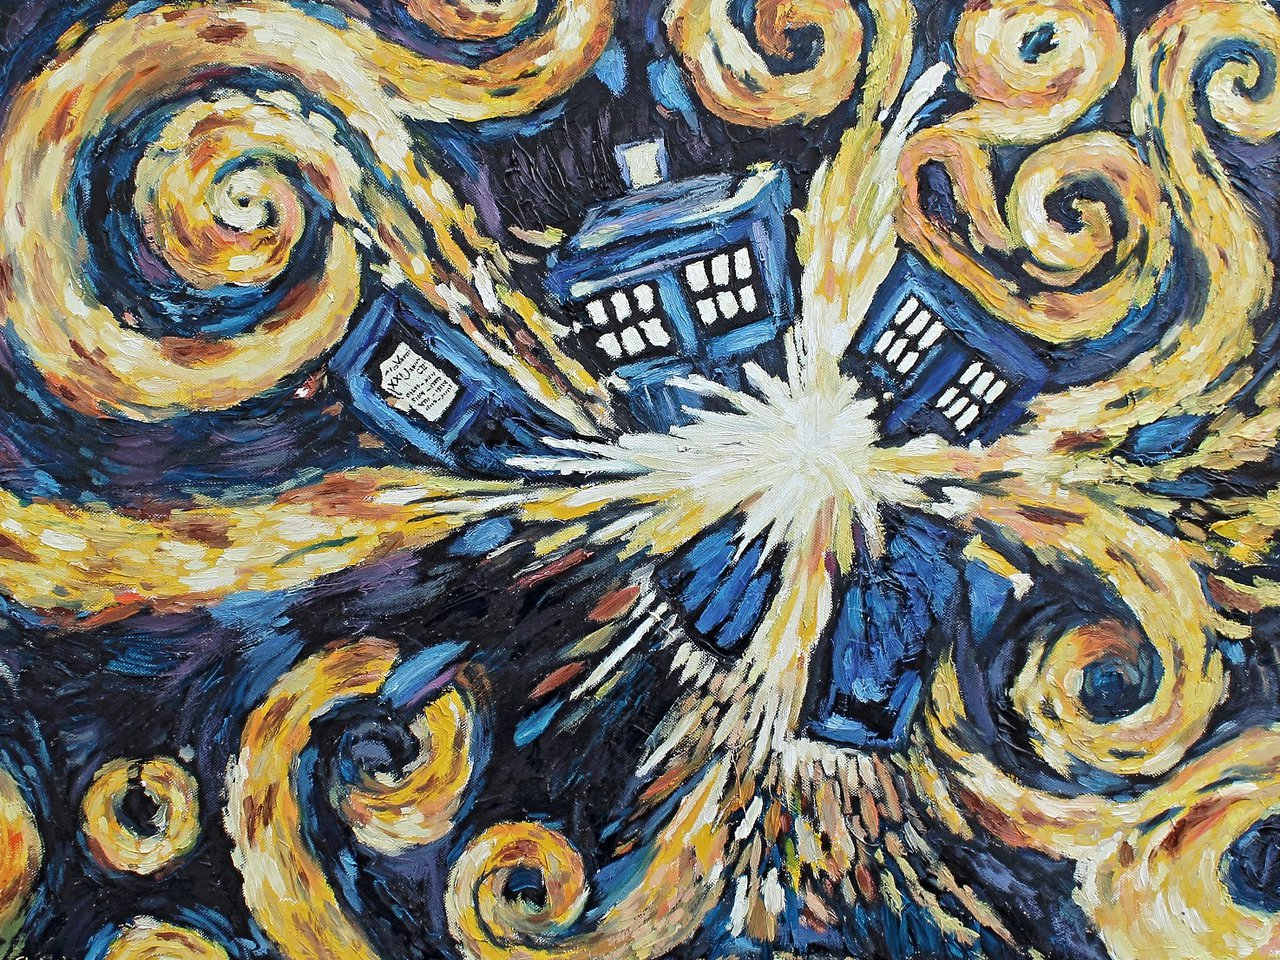 The Pandorica Opens aka Exploding TARDIS by Woolf83 on DeviantArt